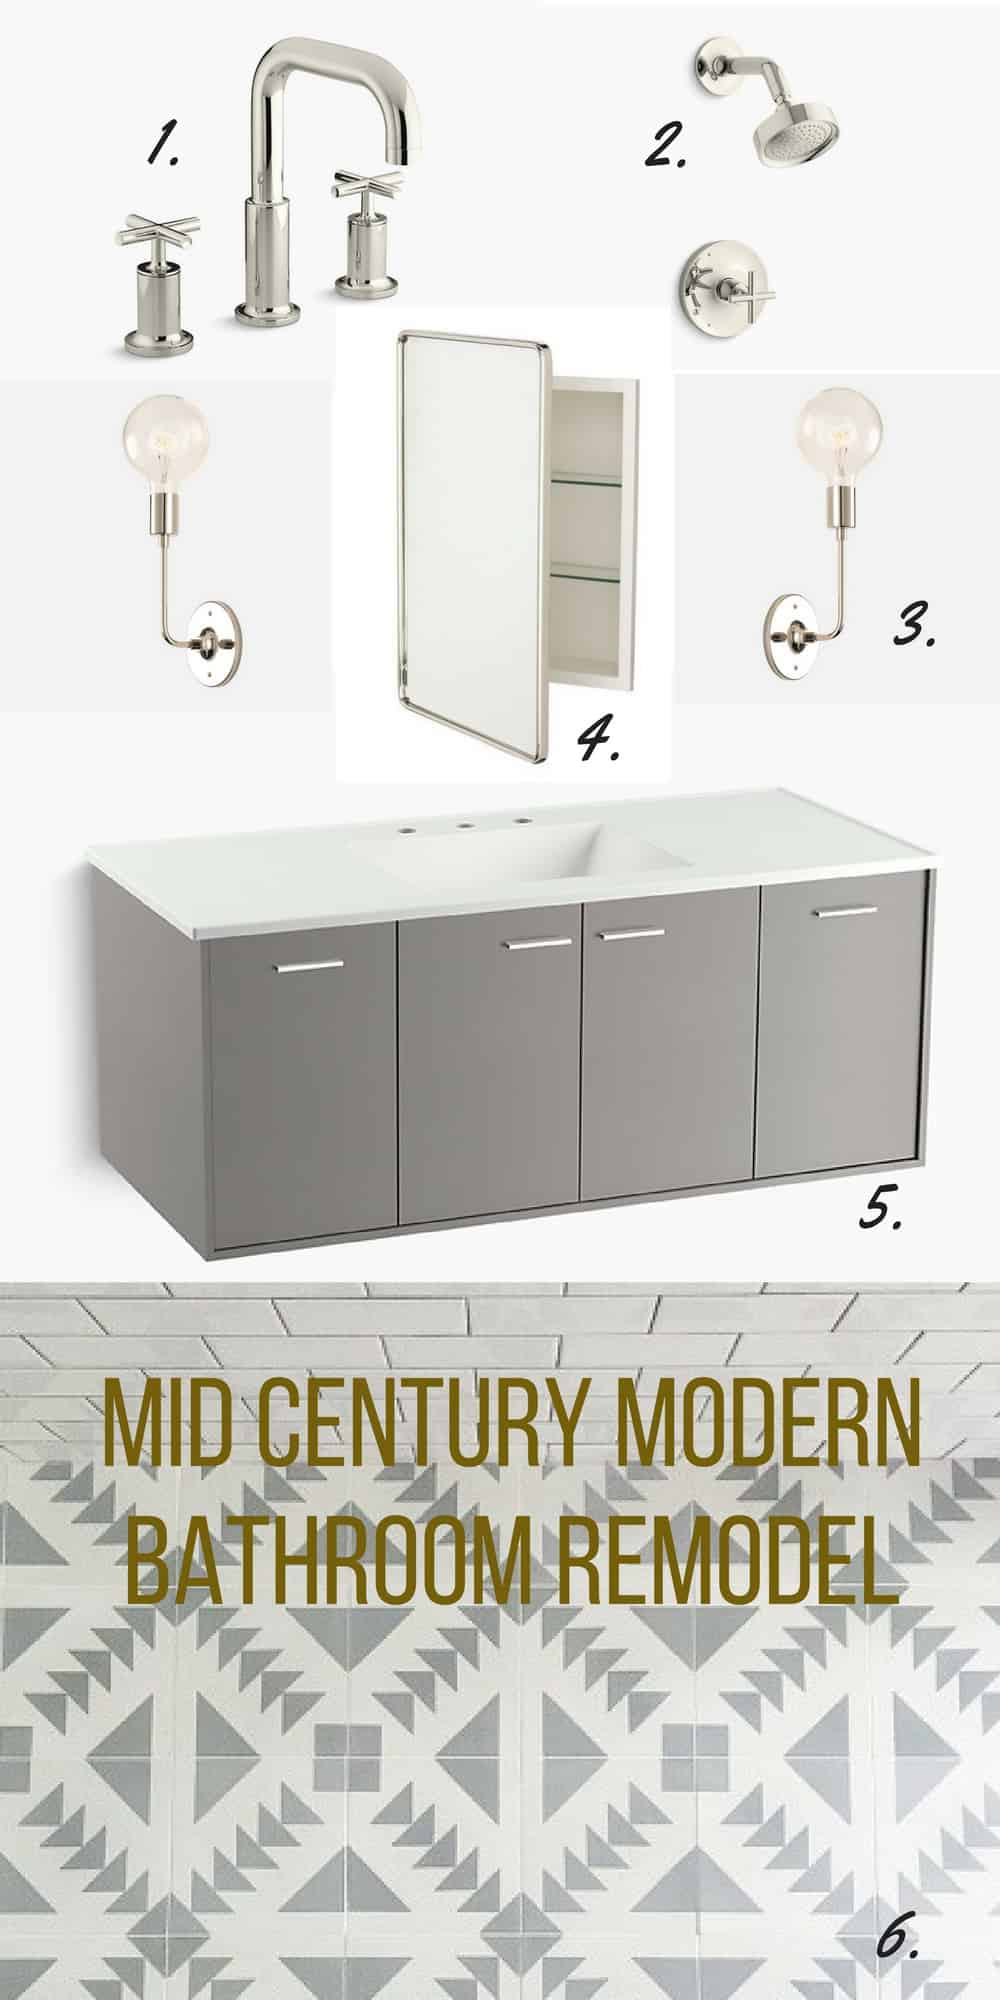 Collage Of Mid Century Modern Bathroom Remodel Fixtures